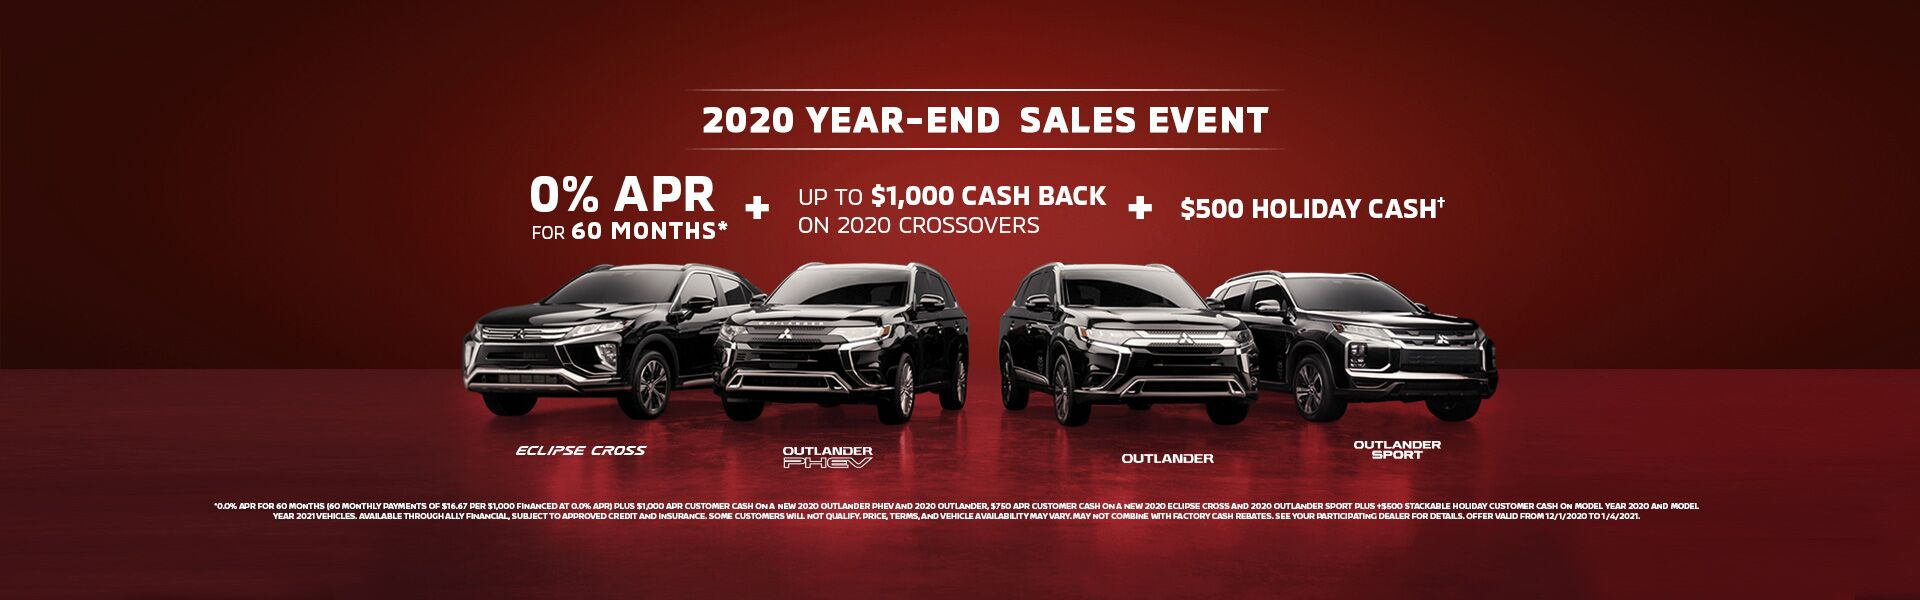 2020 Year-End Sales Event